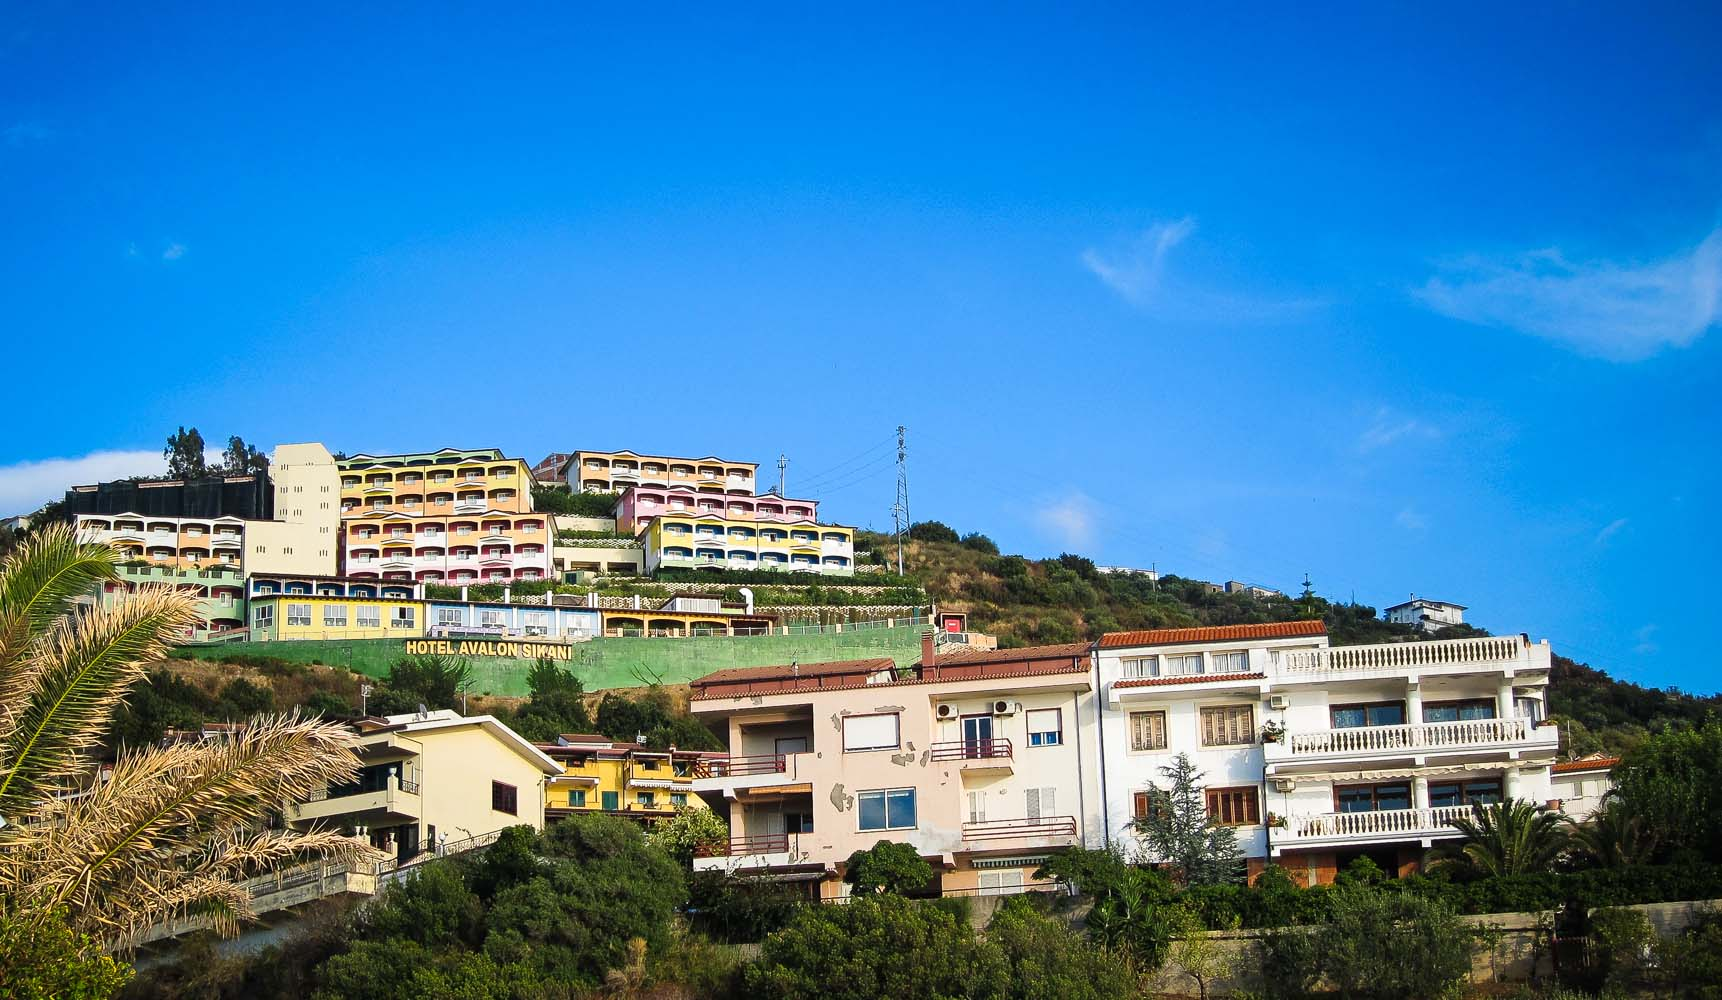 Grand avalon sikani resort auf sizilien abouthotels for Sizilien design hotel